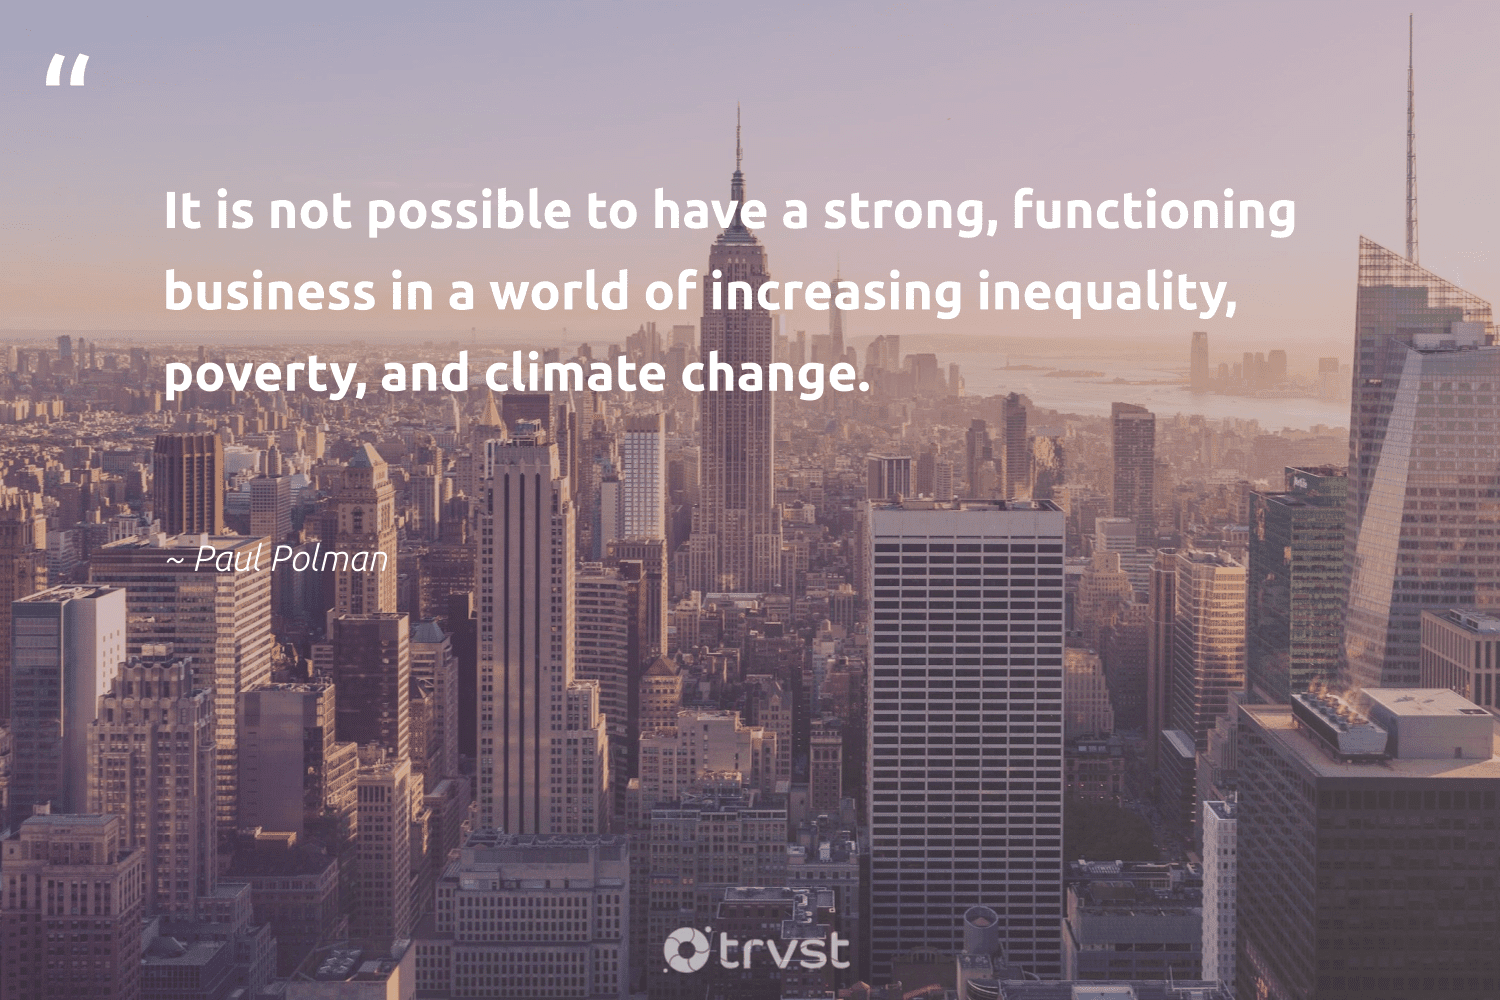 """""""It is not possible to have a strong, functioning business in a world of increasing inequality, poverty, and climate change.""""  - Paul Polman #trvst #quotes #climatechange #climate #poverty #climatechangeisreal #carbonemissions #giveback #ecoconscious #dotherightthing #cop21 #globalwarming"""